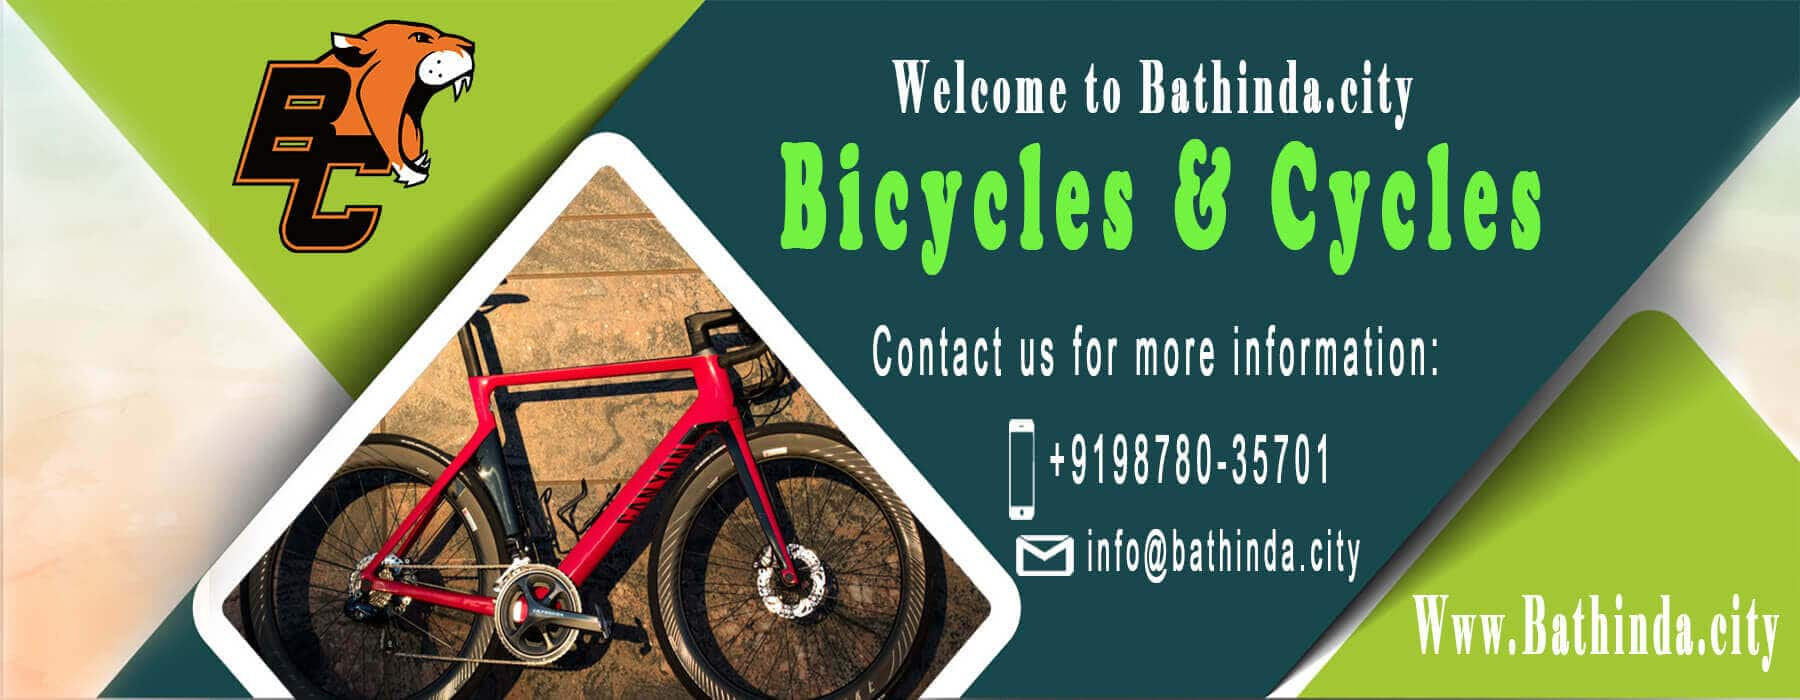 Bicycles And Cycles store in bathinda